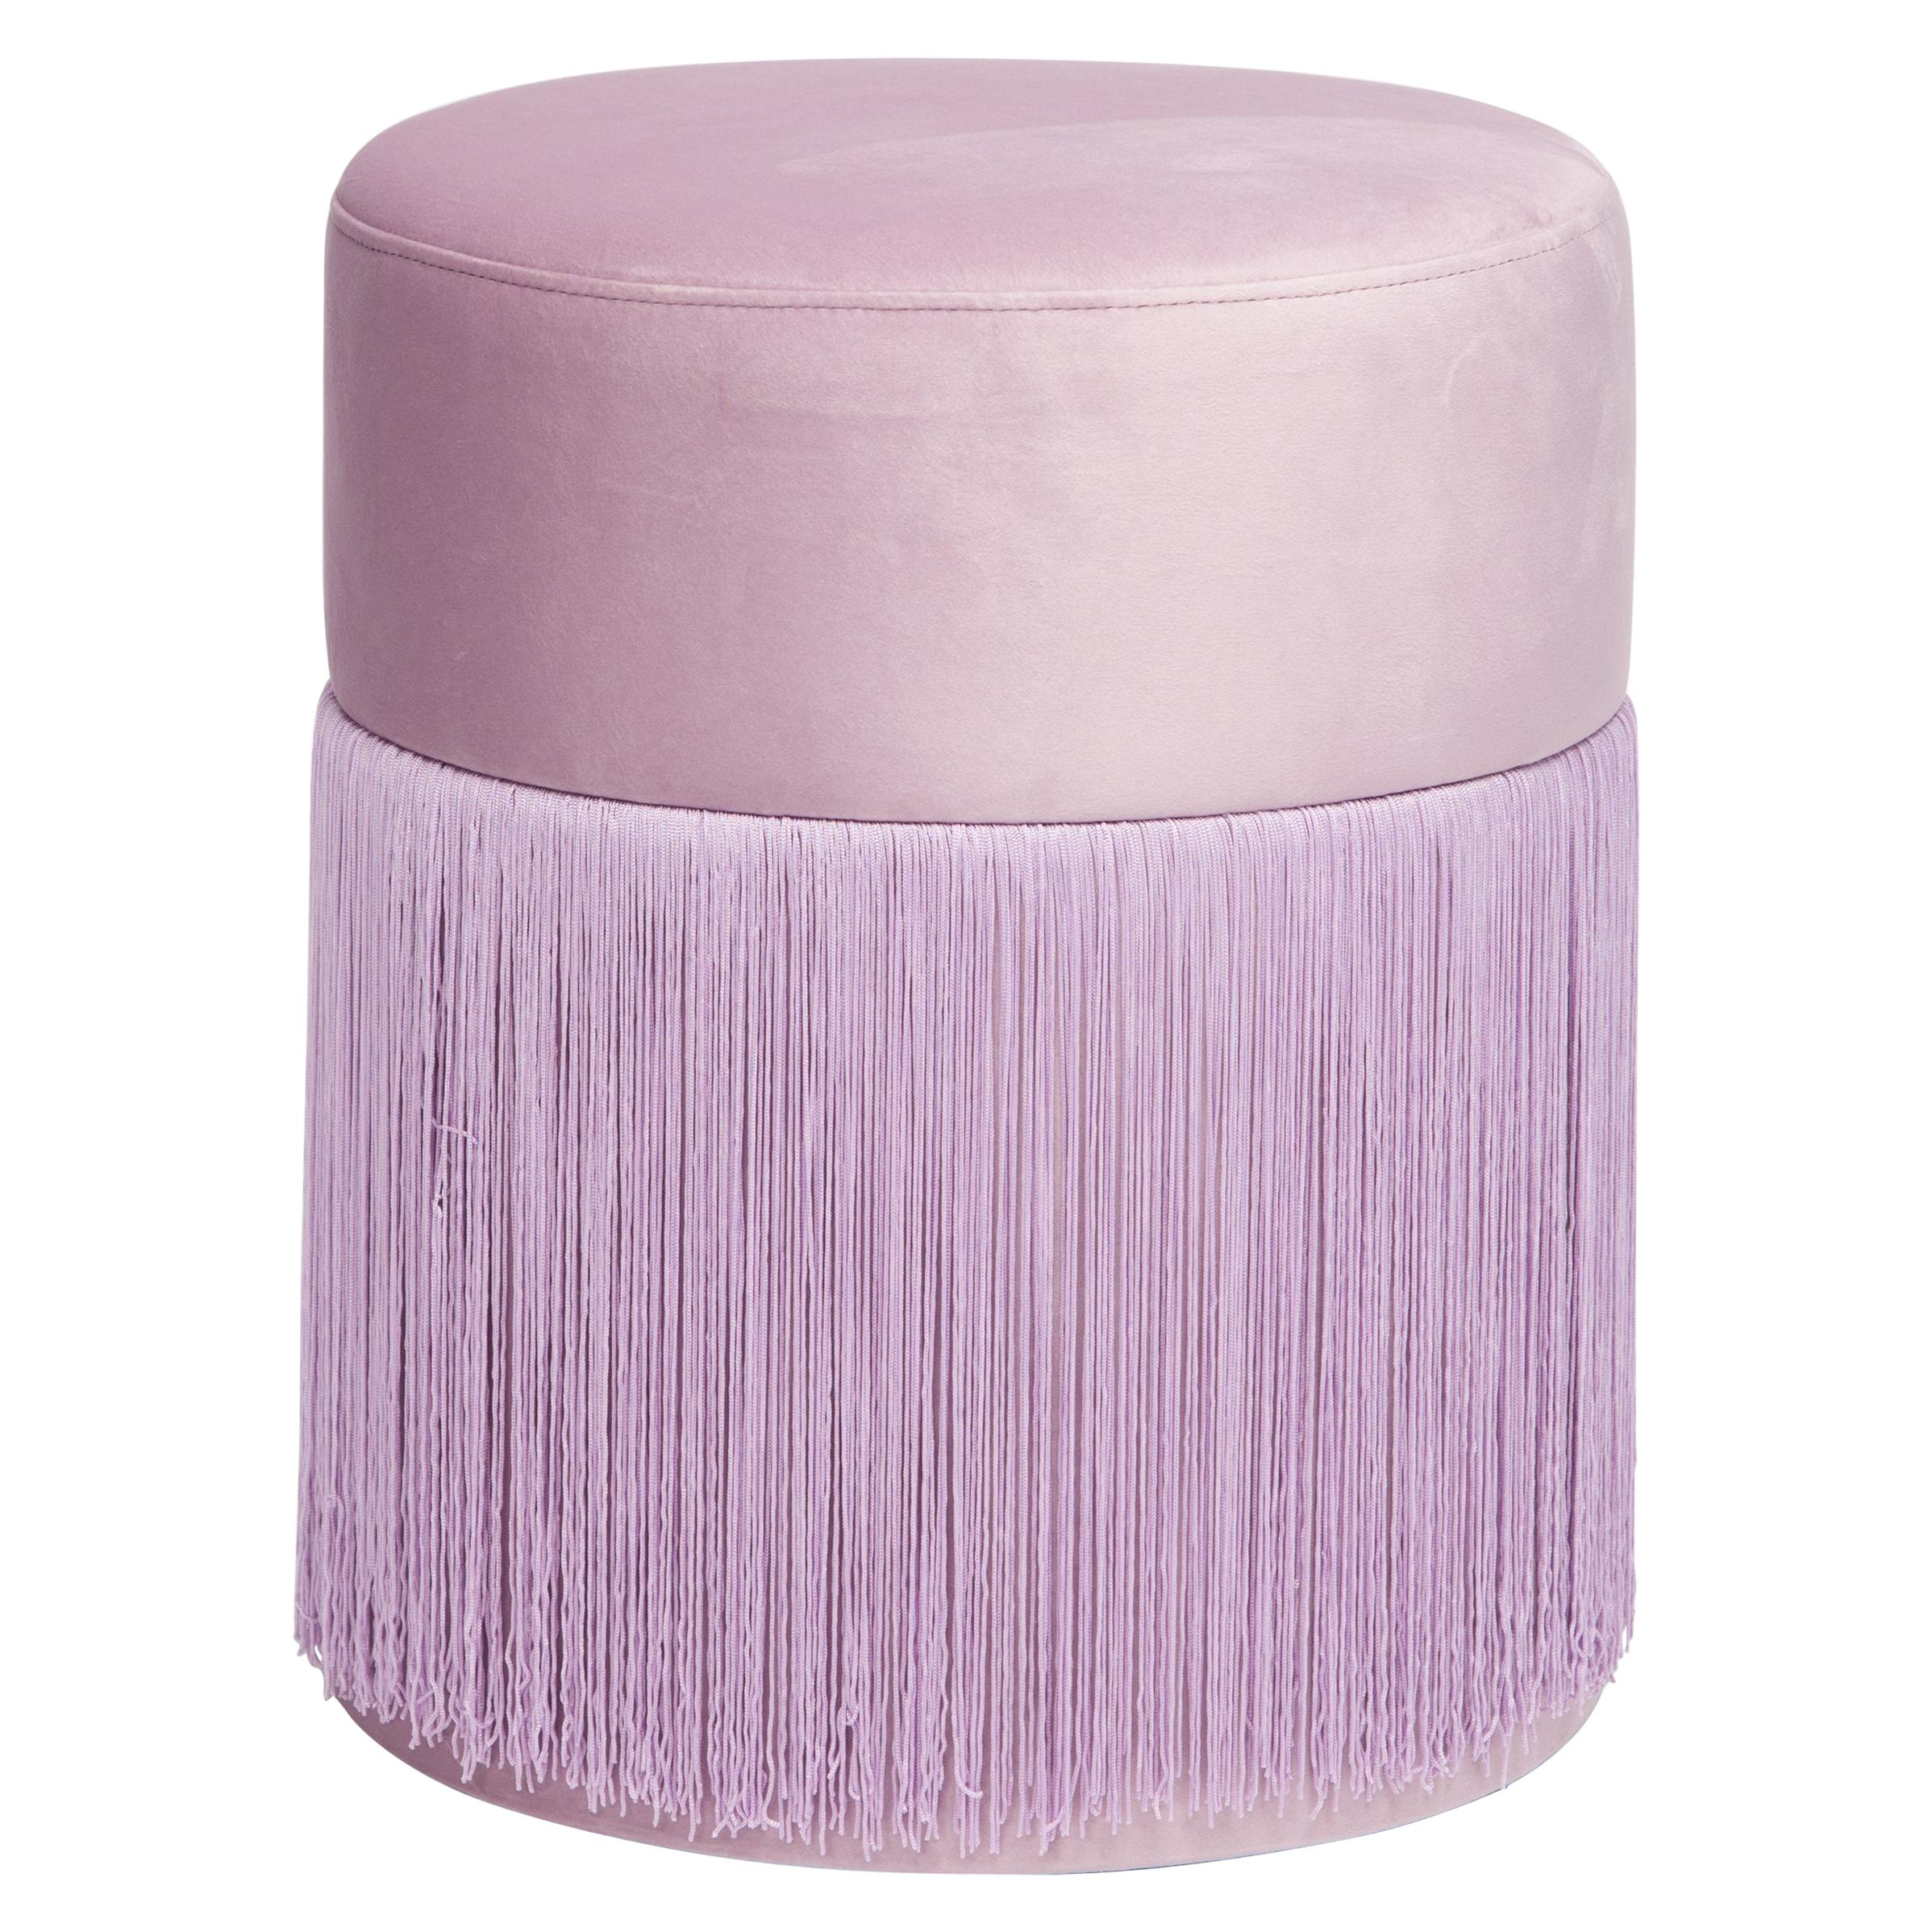 Pouf Pill S by Houtique